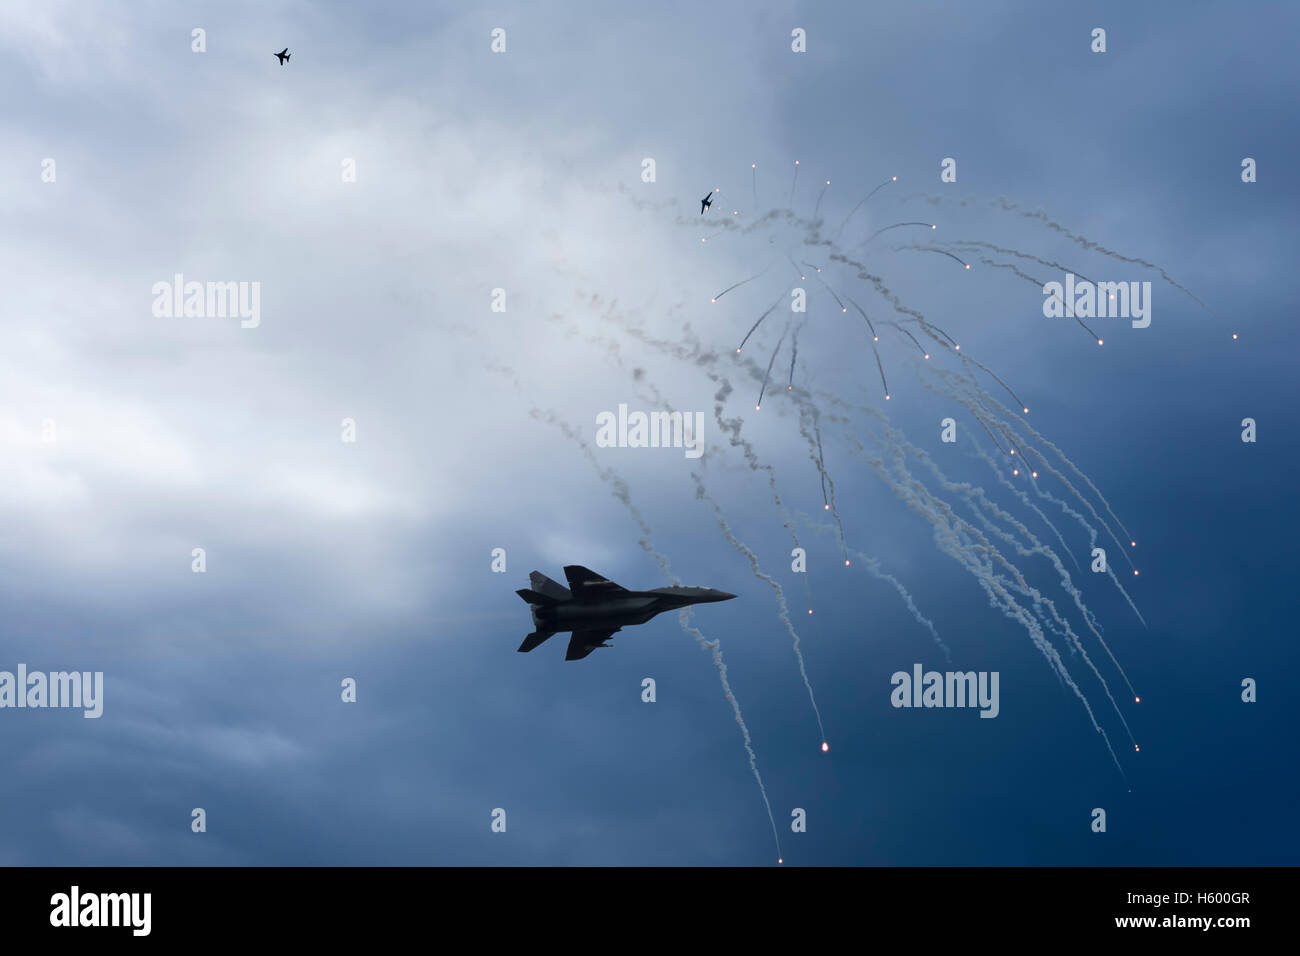 Air Strike. Fighter Jet in Dogfight. Aircraft in Battle Firing Defense Flares. War Zone. - Stock Image